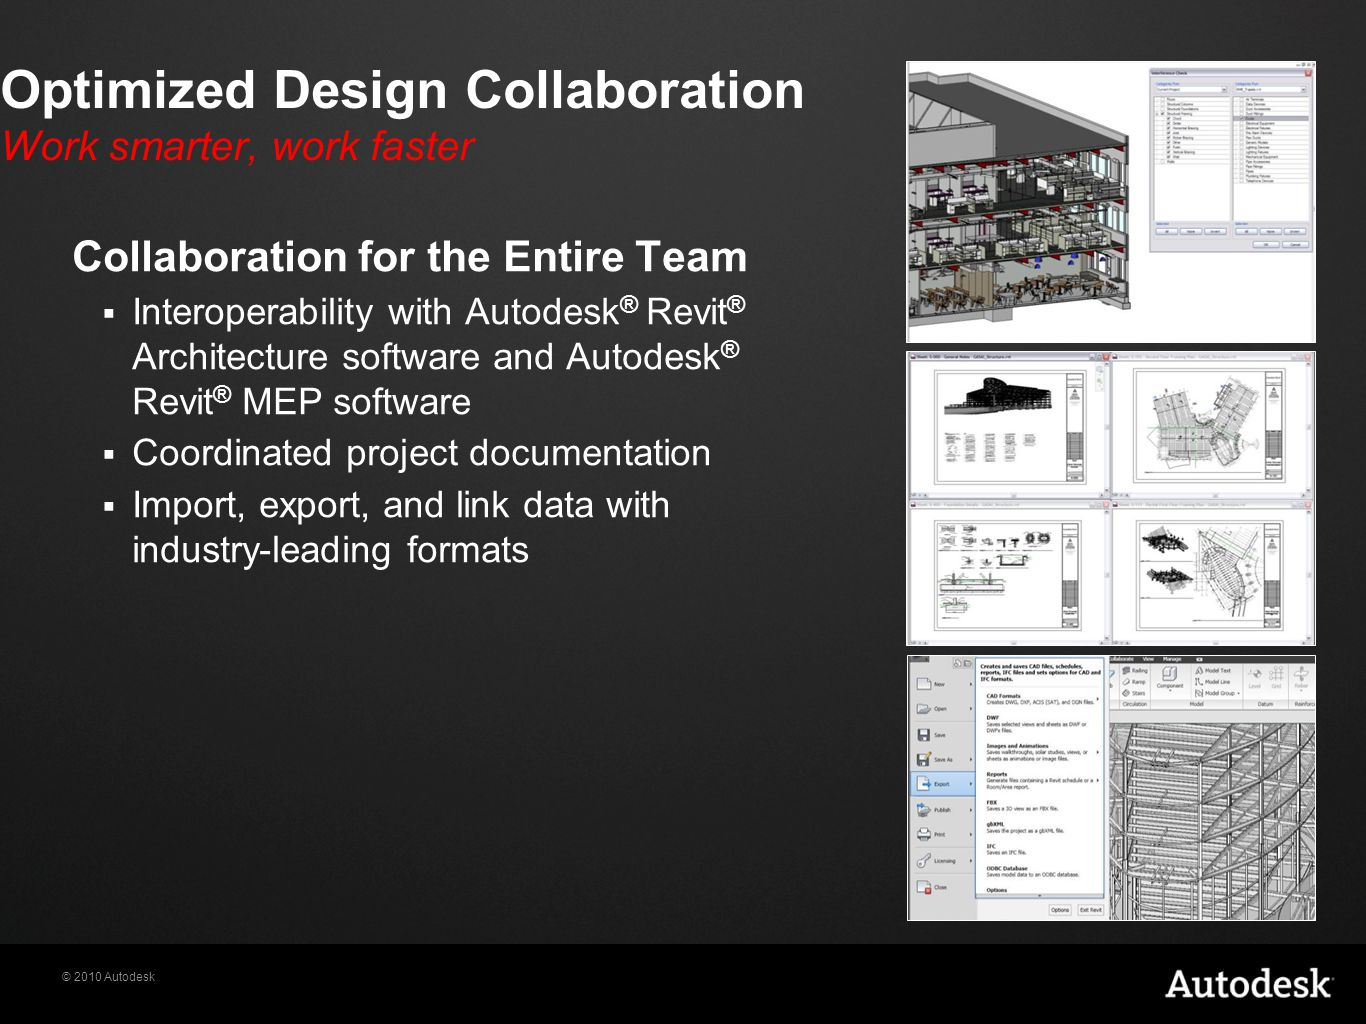 © 2010 Autodesk Optimized Design Collaboration Work smarter, work faster Collaboration for the Entire Team  Interoperability with Autodesk ® Revit ® Architecture software and Autodesk ® Revit ® MEP software  Coordinated project documentation  Import, export, and link data with industry-leading formats